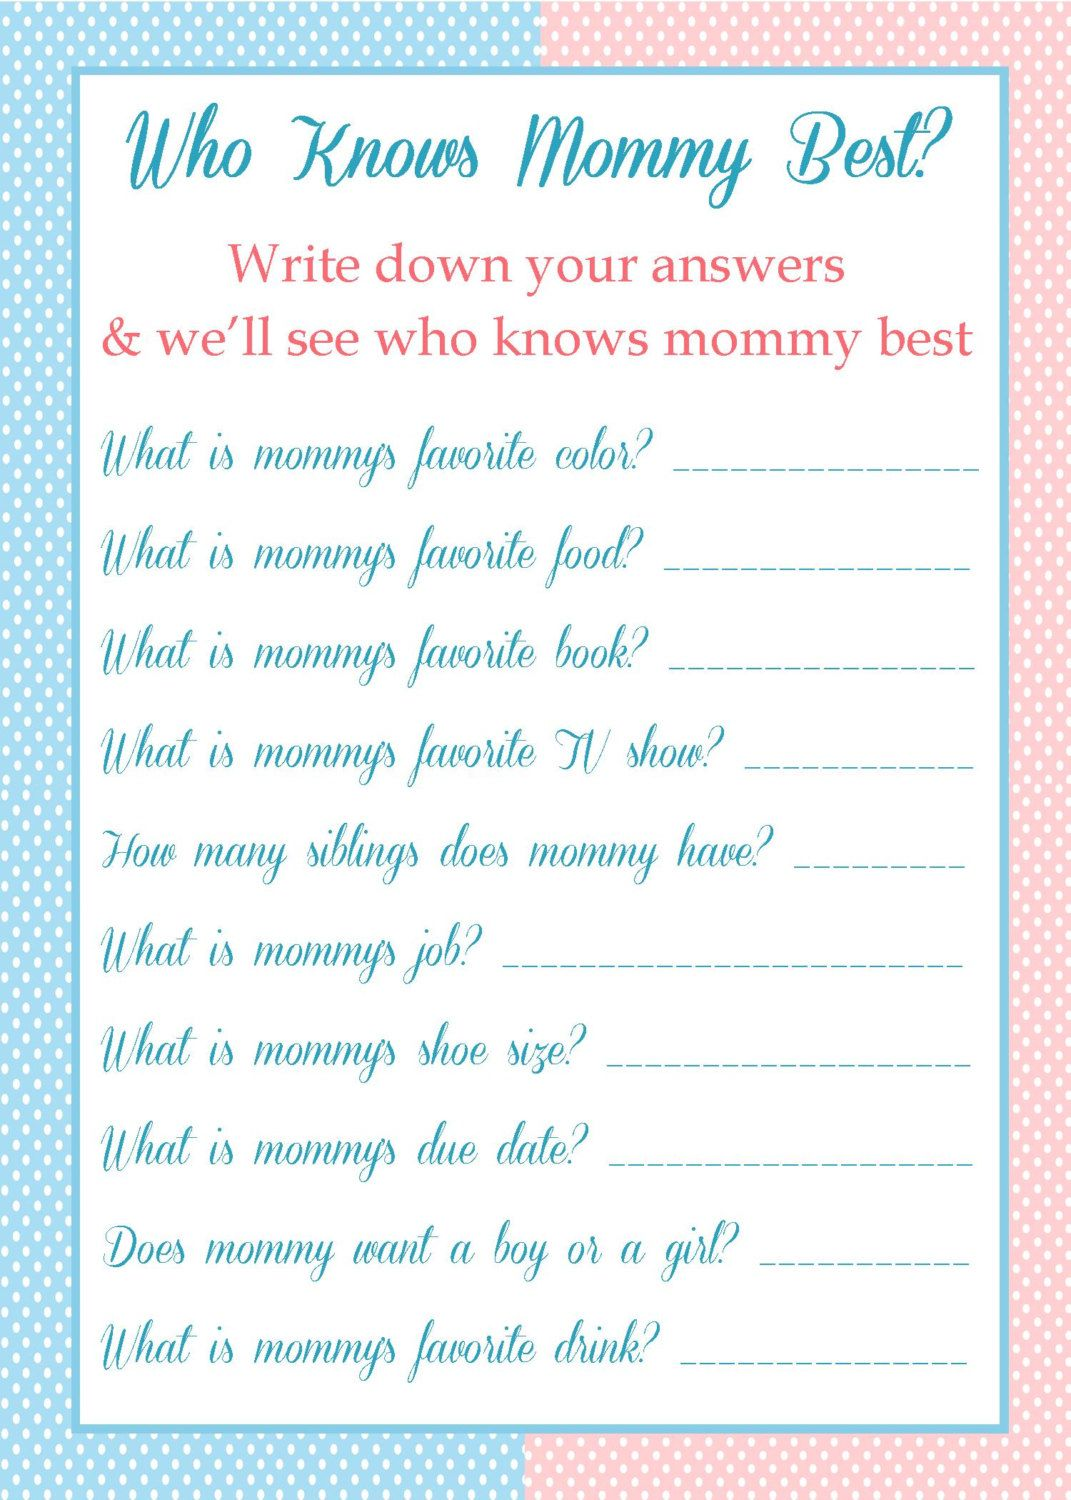 Who Knows Mommy Best   Baby Shower Game   $5.00